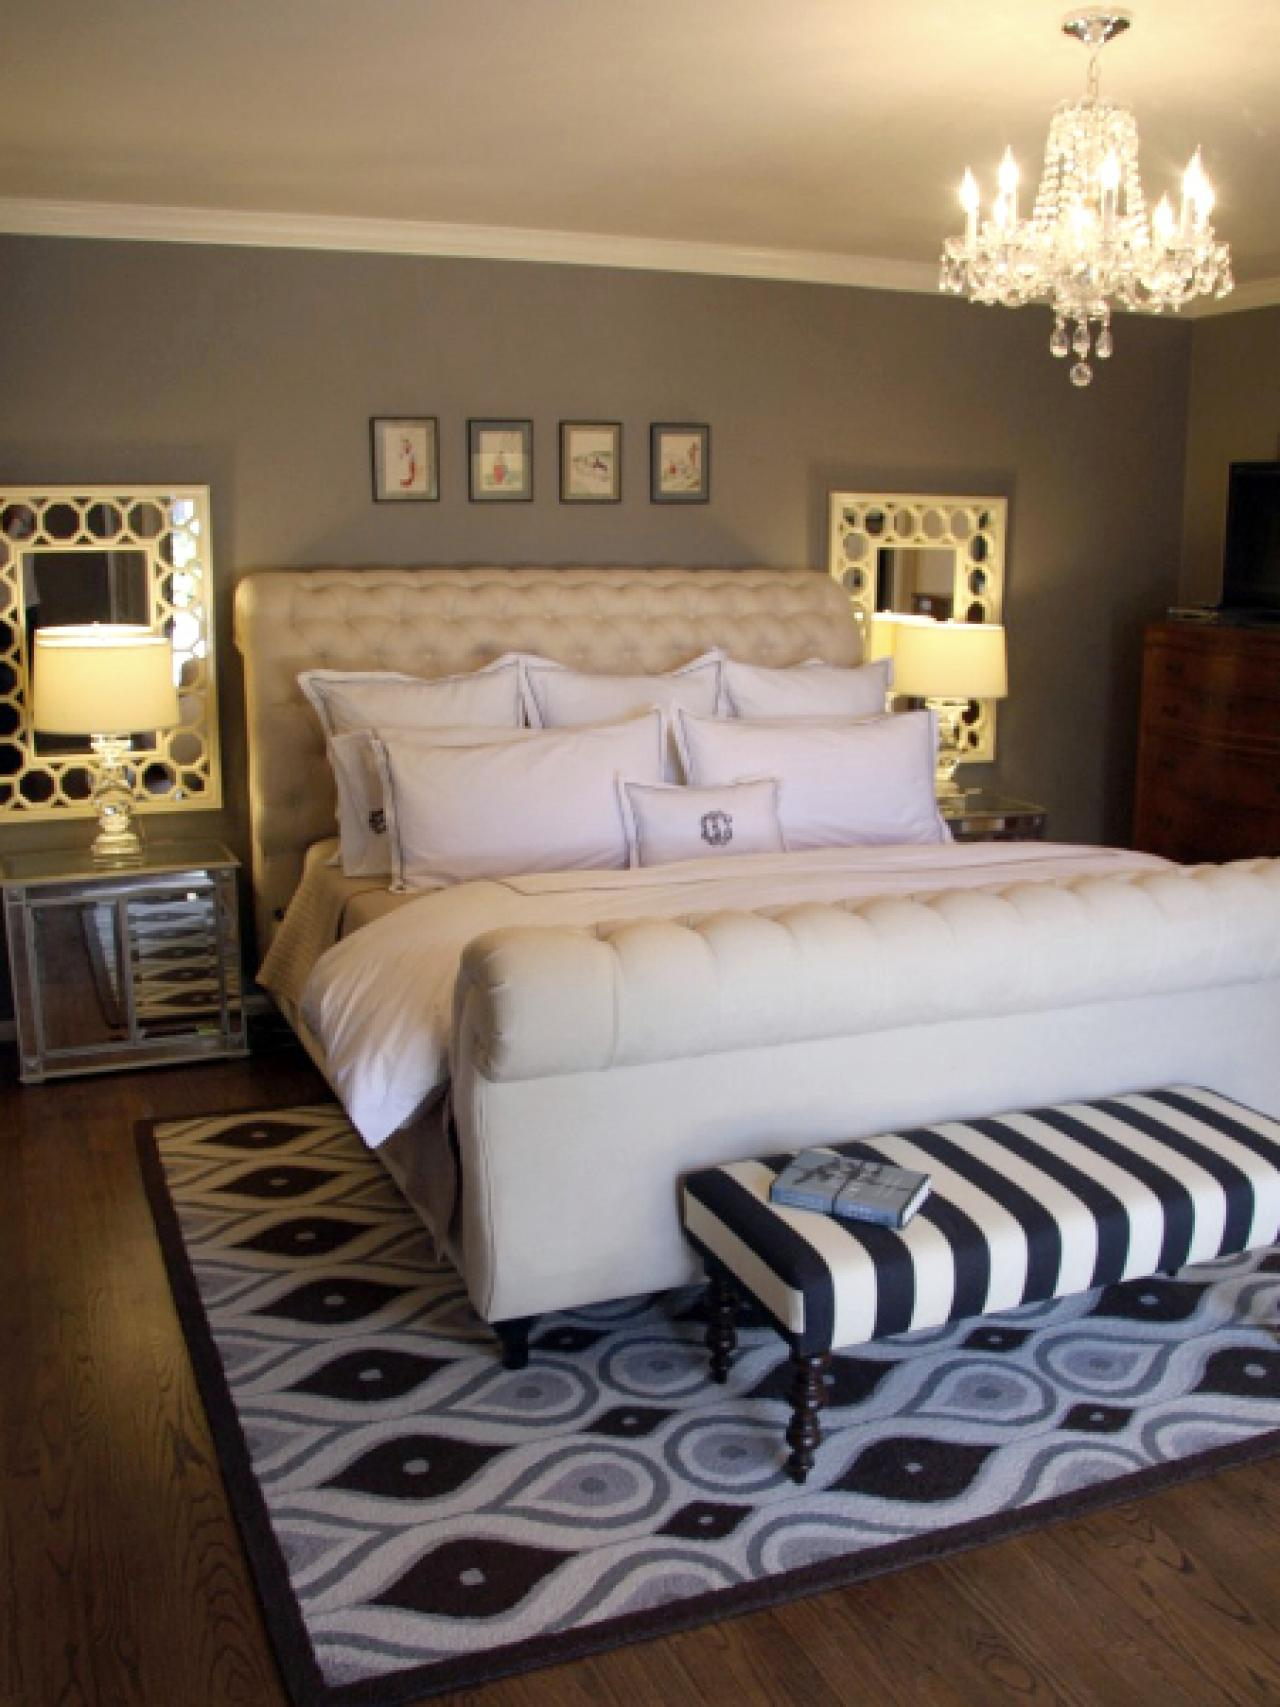 Designing The Bedroom As A Adorable Bedroom Ideas For Couples